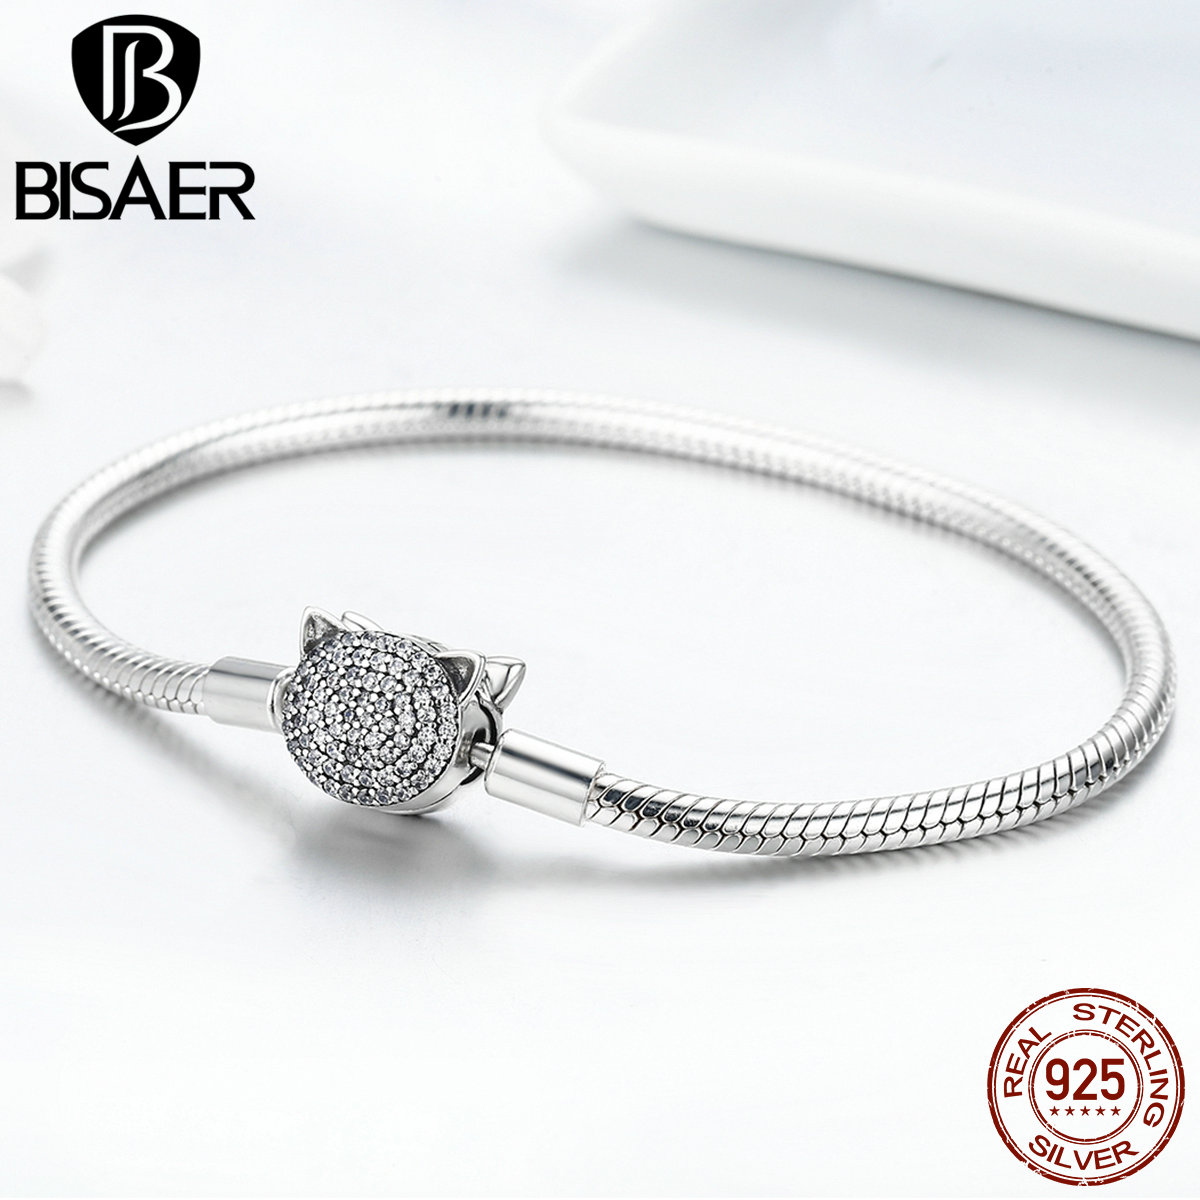 BISAER Real 925 Sterling Silver Snake Chain Cat Bracelets & Bangles Pussy Cat Clasp Femme Women Bracelets Fine Jewelry GXB053 wiggle and giggle pussy cat pussy cat what can you see